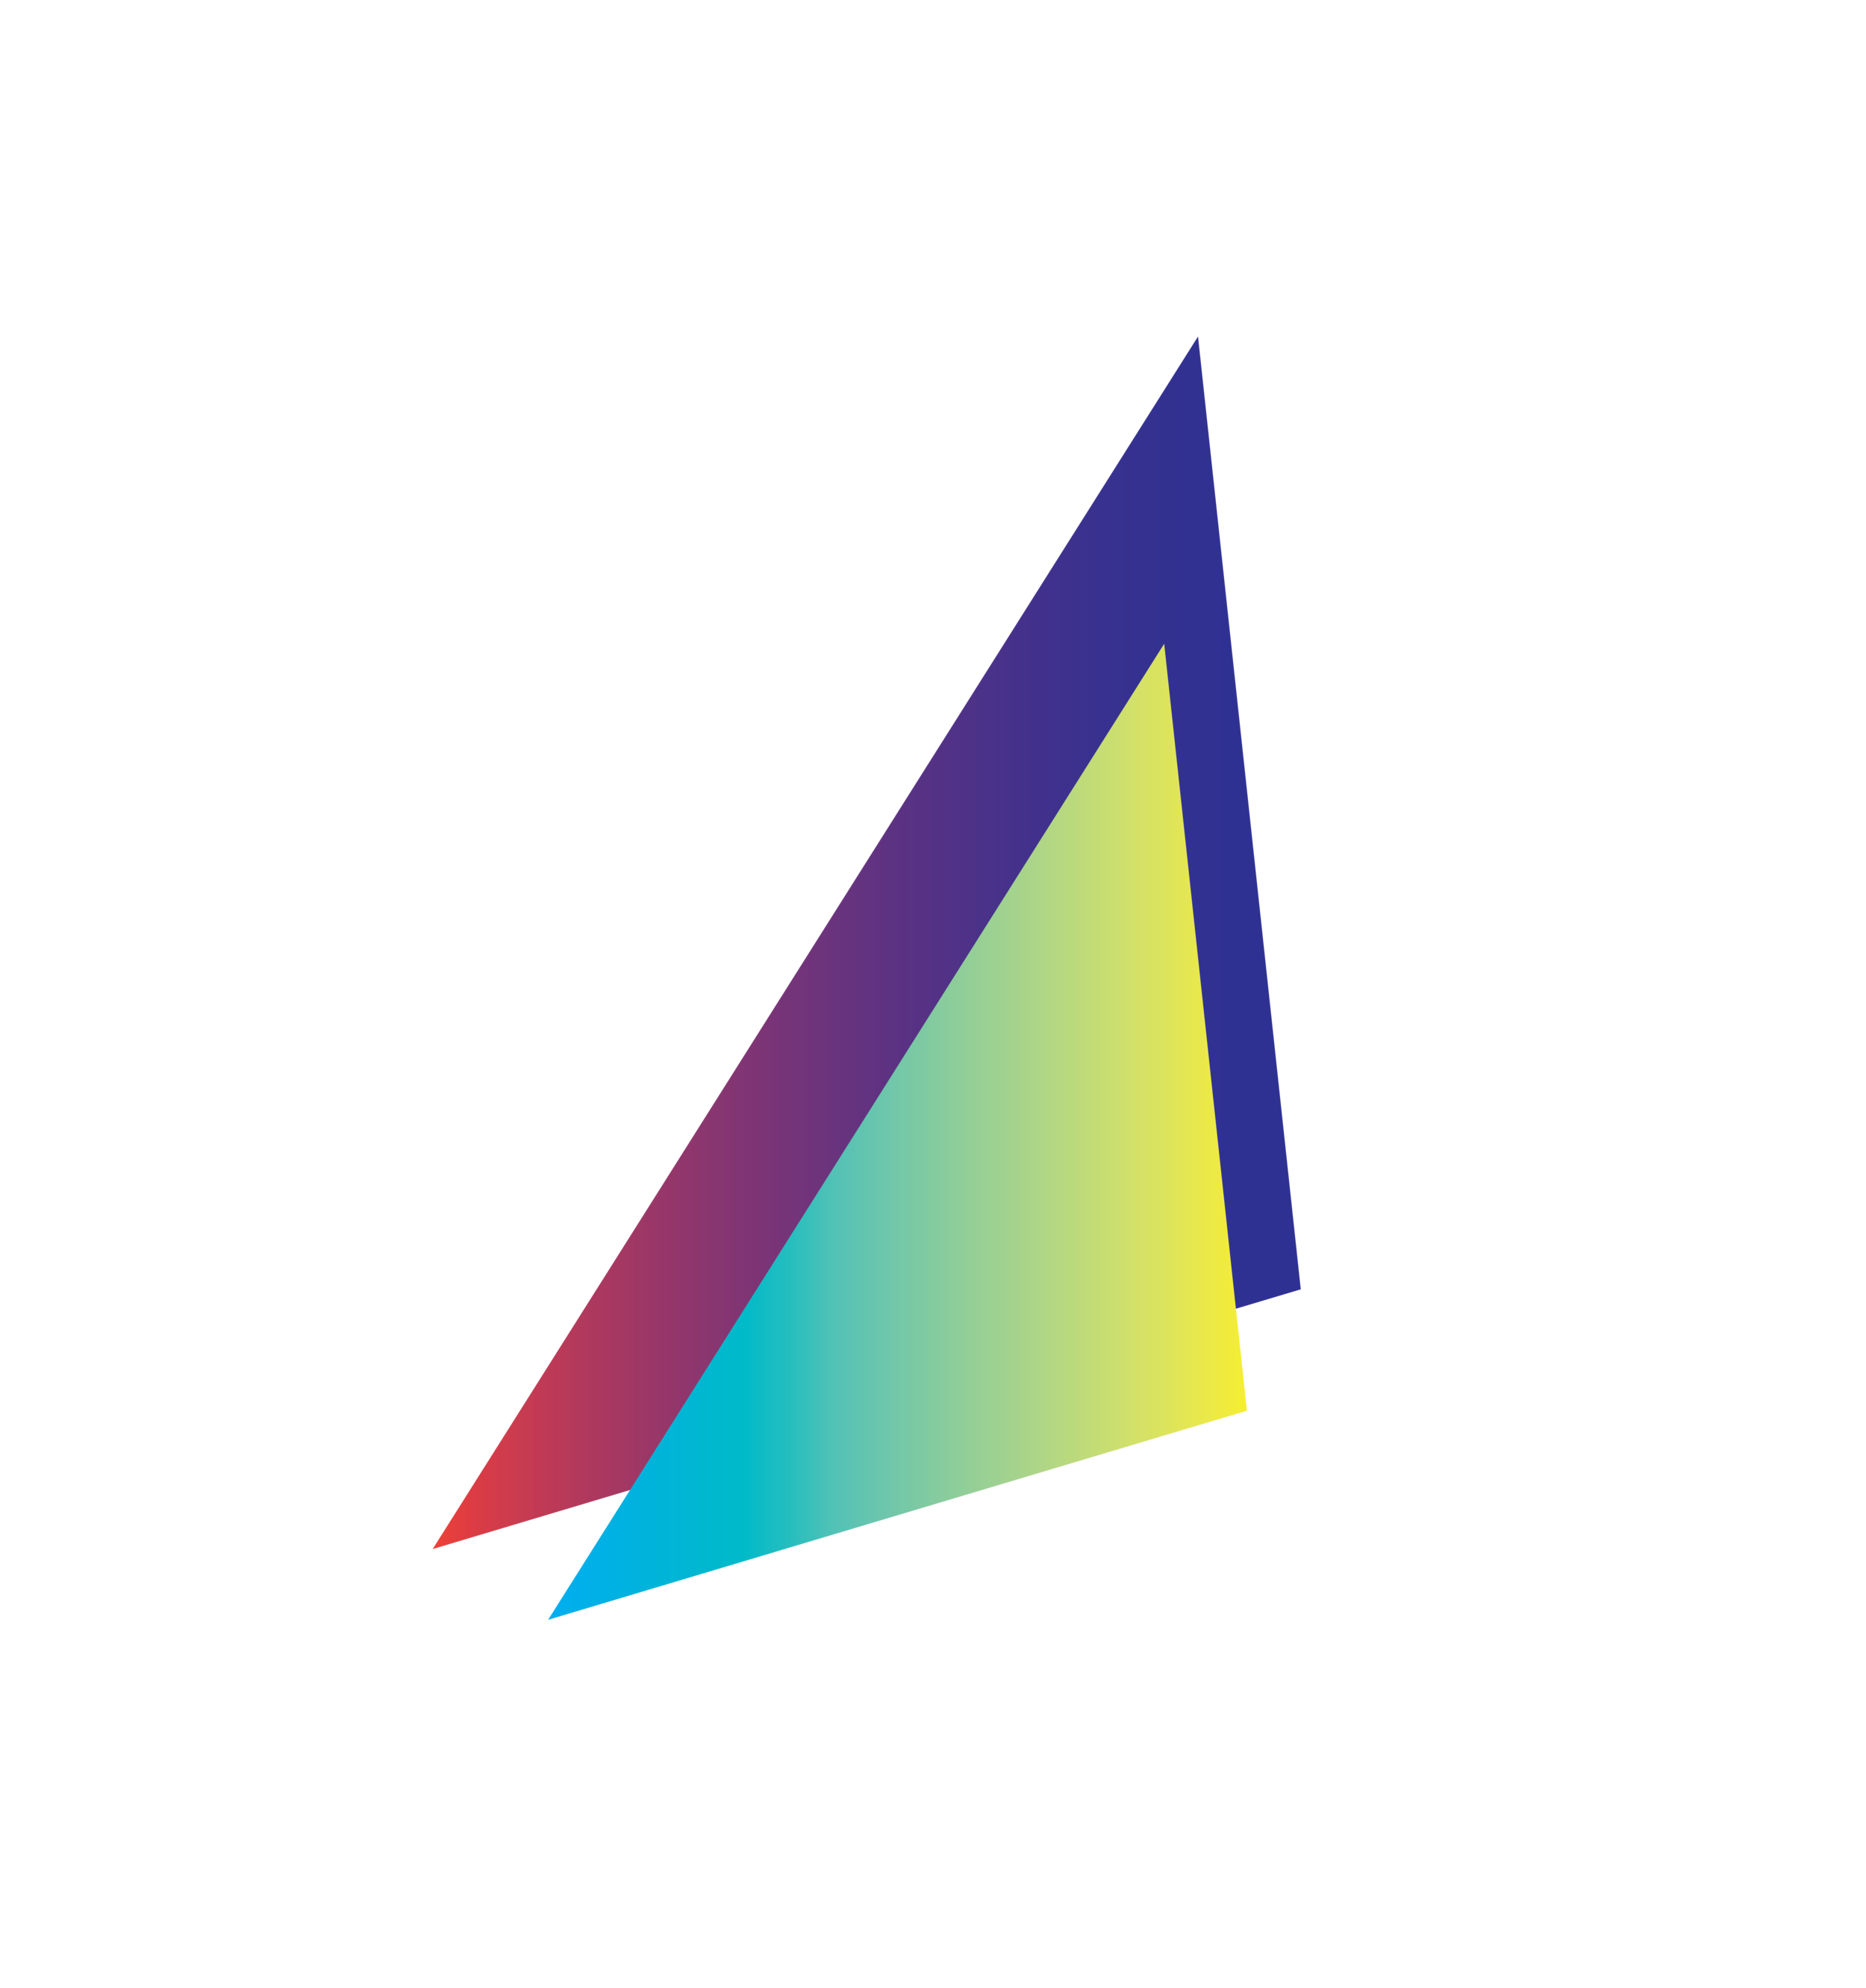 TRIANGLES-32.png